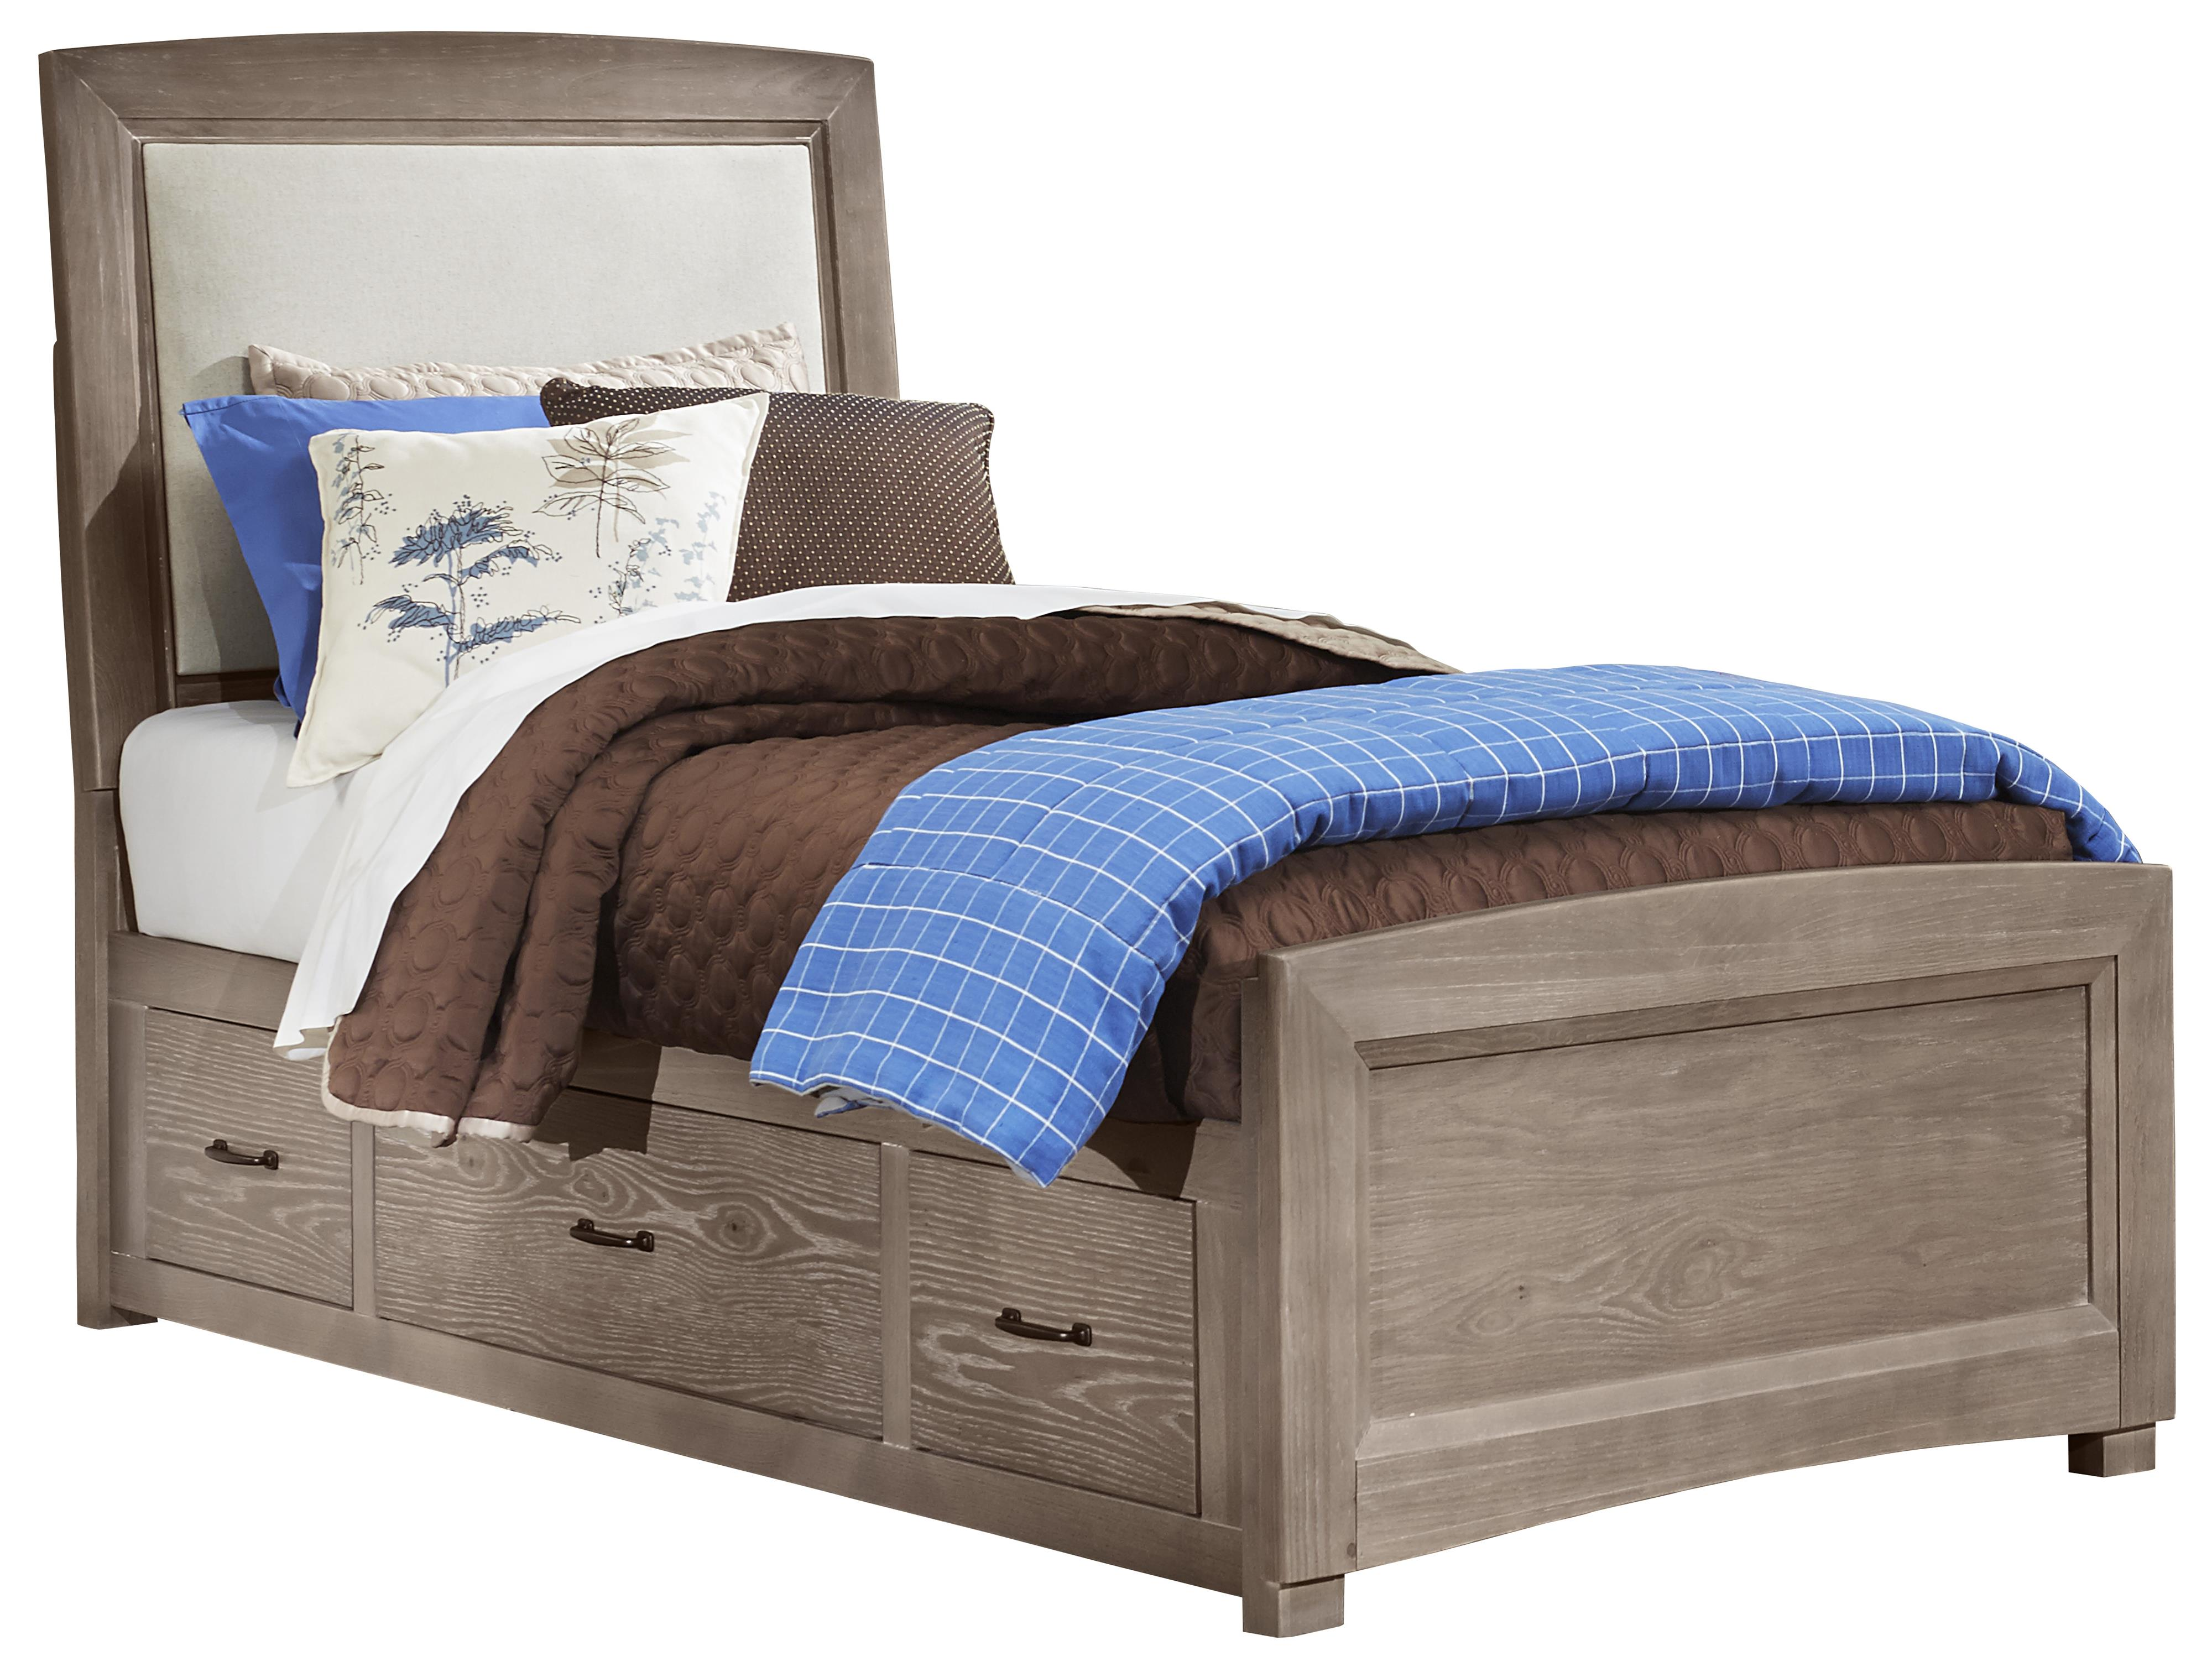 Transitions Twin Uph. Bed, Base Cloth Linen with Storage by Vaughan Bassett at Lapeer Furniture & Mattress Center